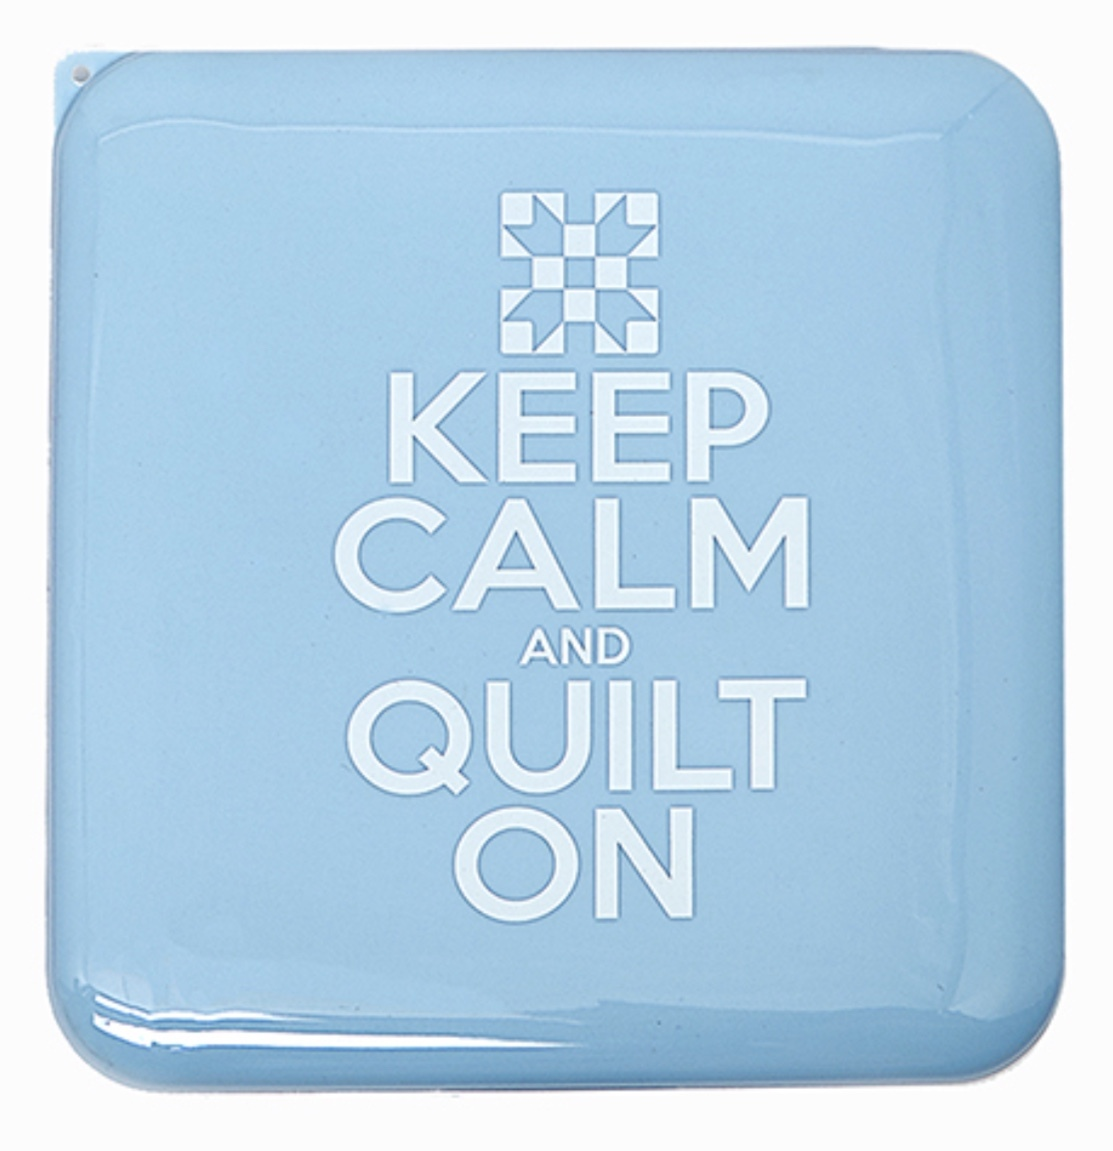 Antibacterial Face Mask Case - Blue - Keep Calm and Quilt On 56551